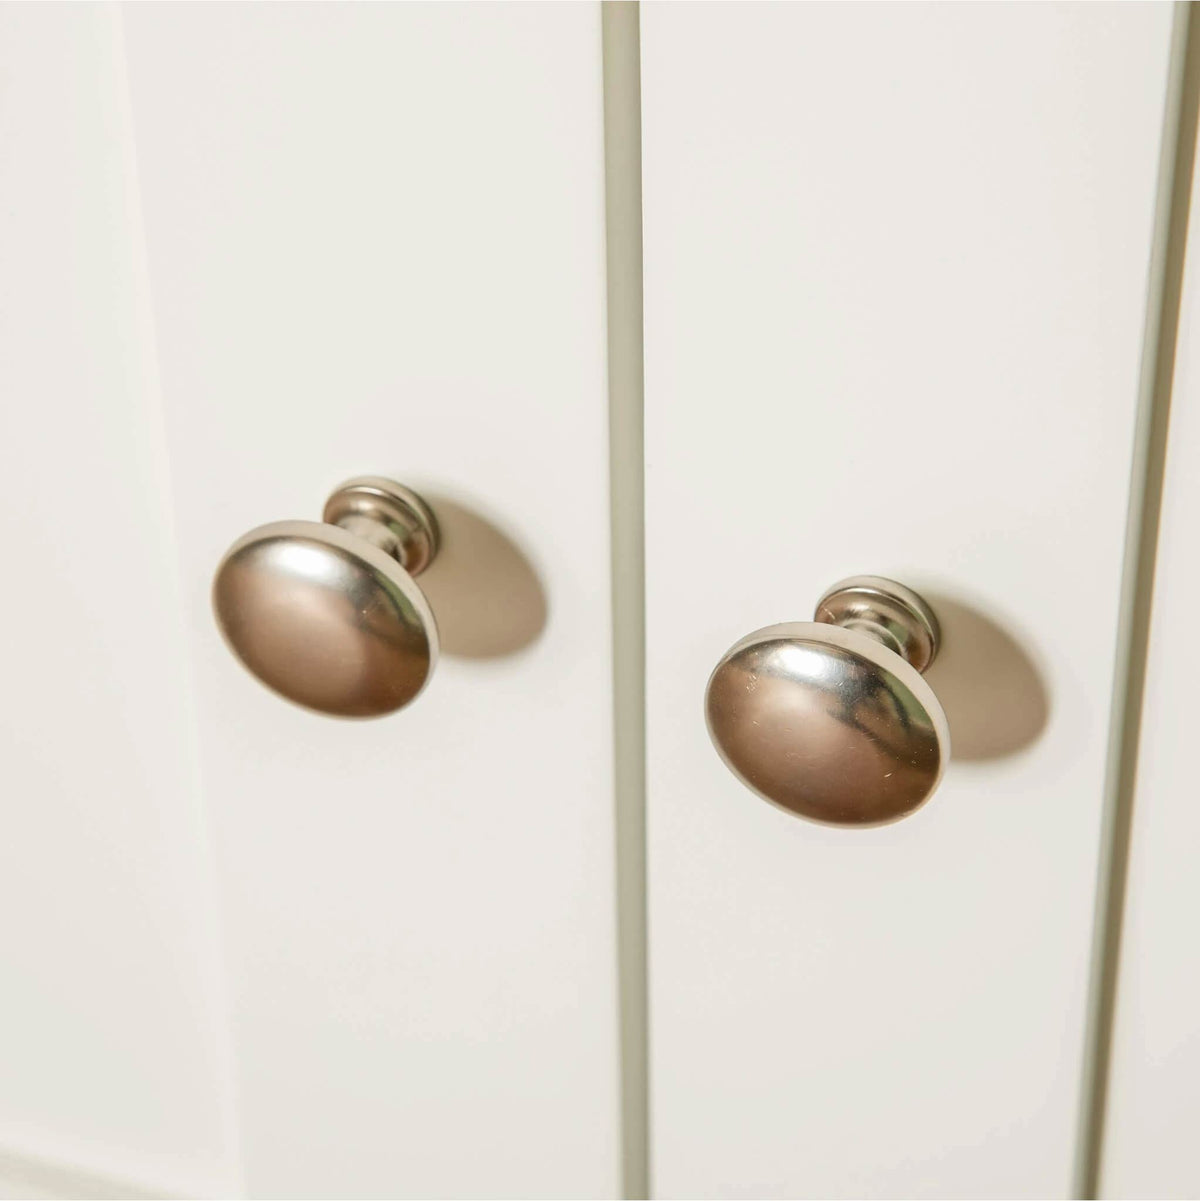 Farrow White Small Sideboard Unit cupboard door knobs